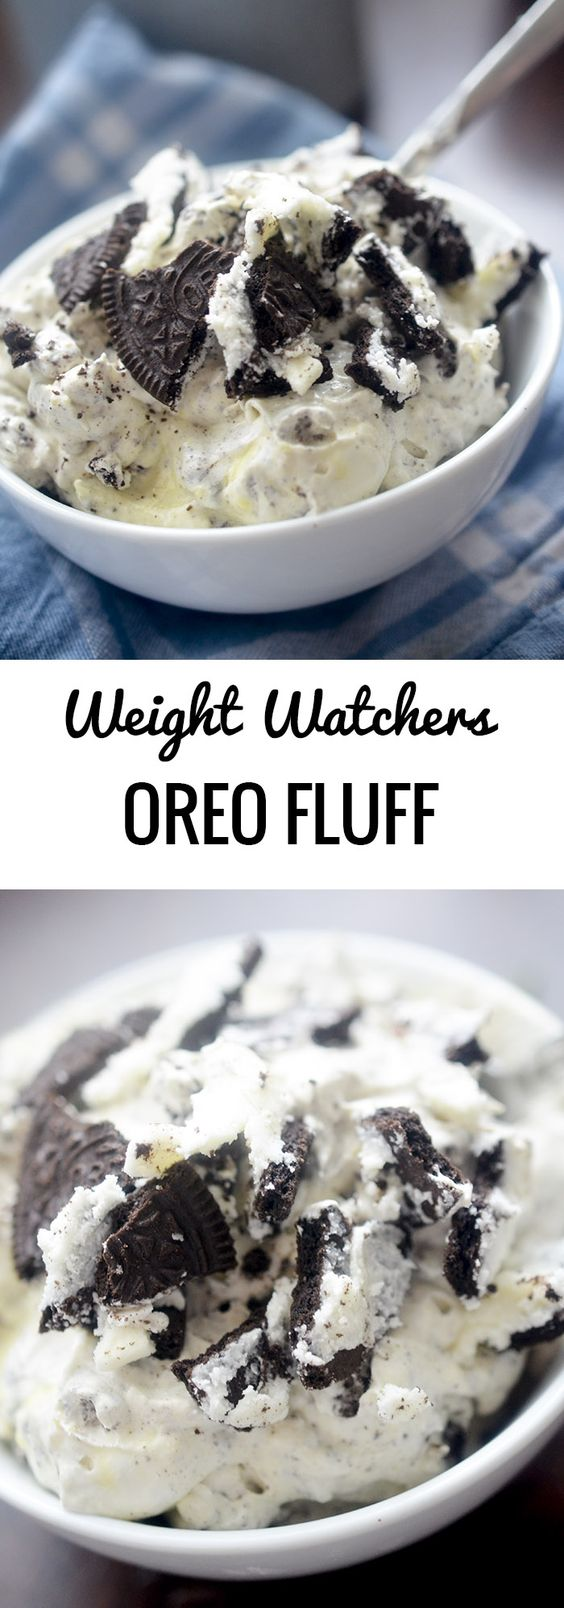 30 Weight Watchers Recipes With Smart Points 3